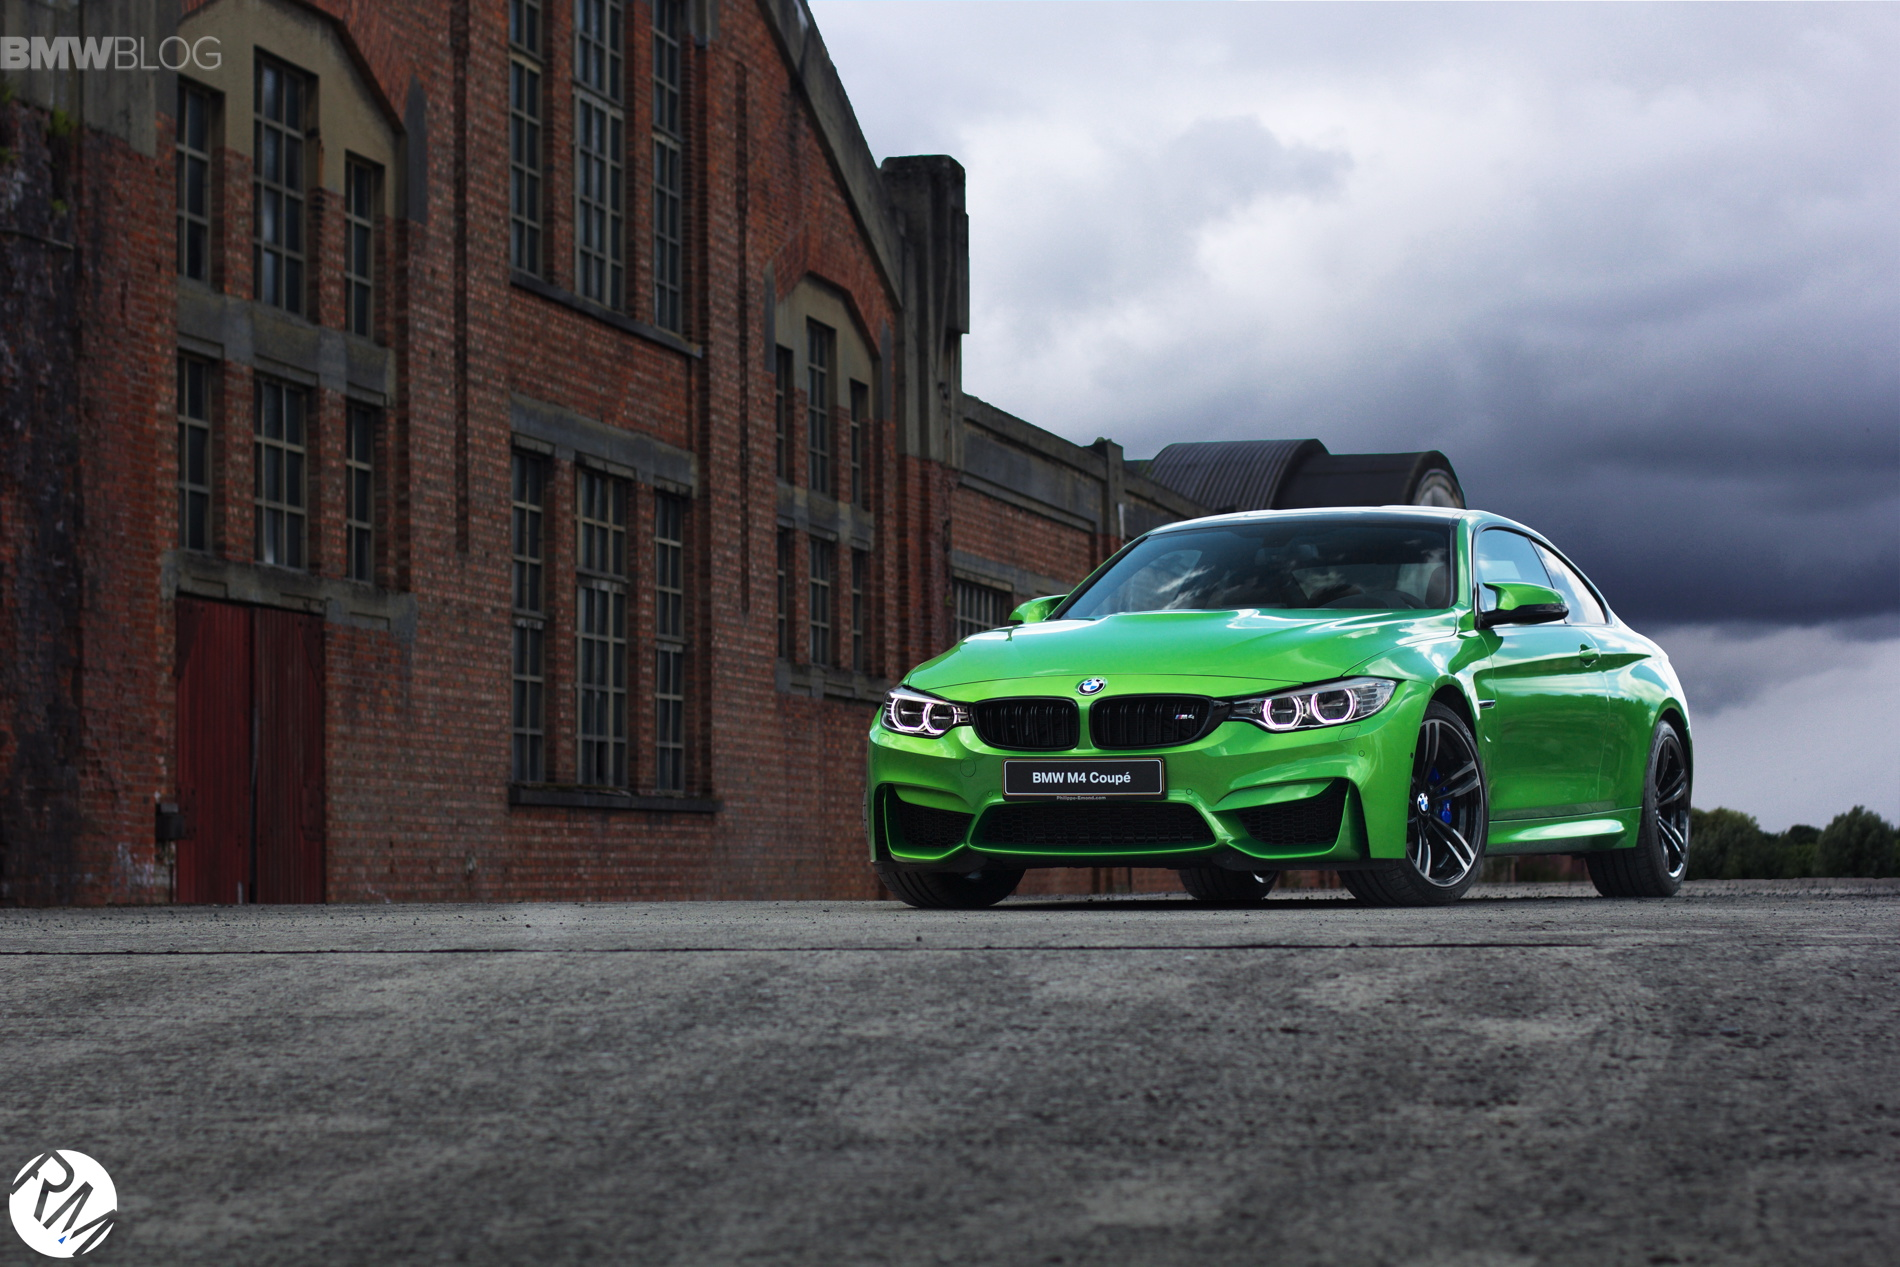 BMW M4 Java Green images 1900x1200 02